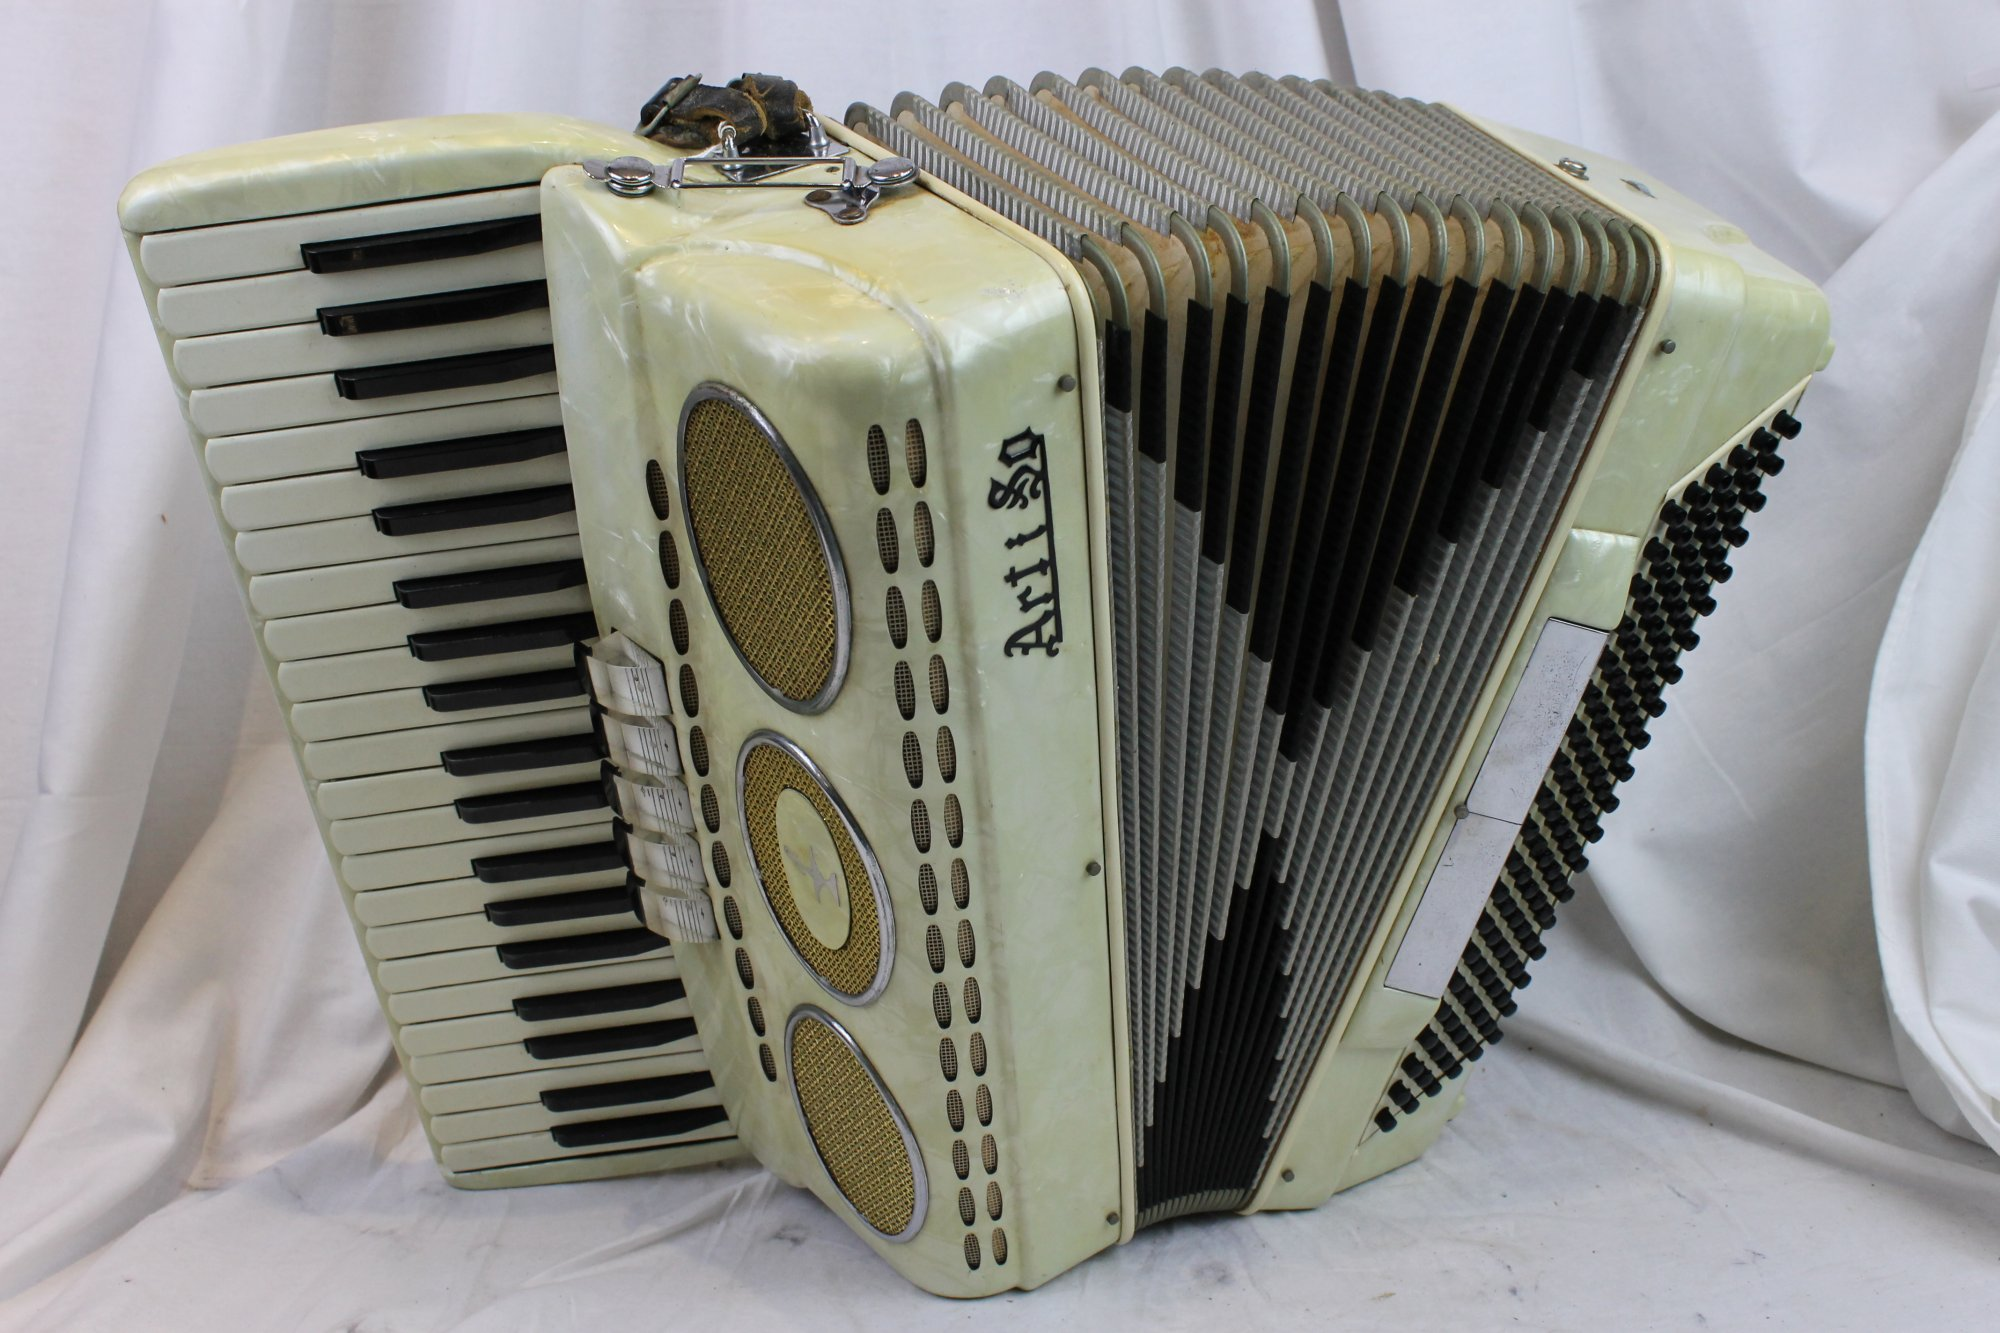 3111 - Cream Artiso Piano Accordion LMH 41 120